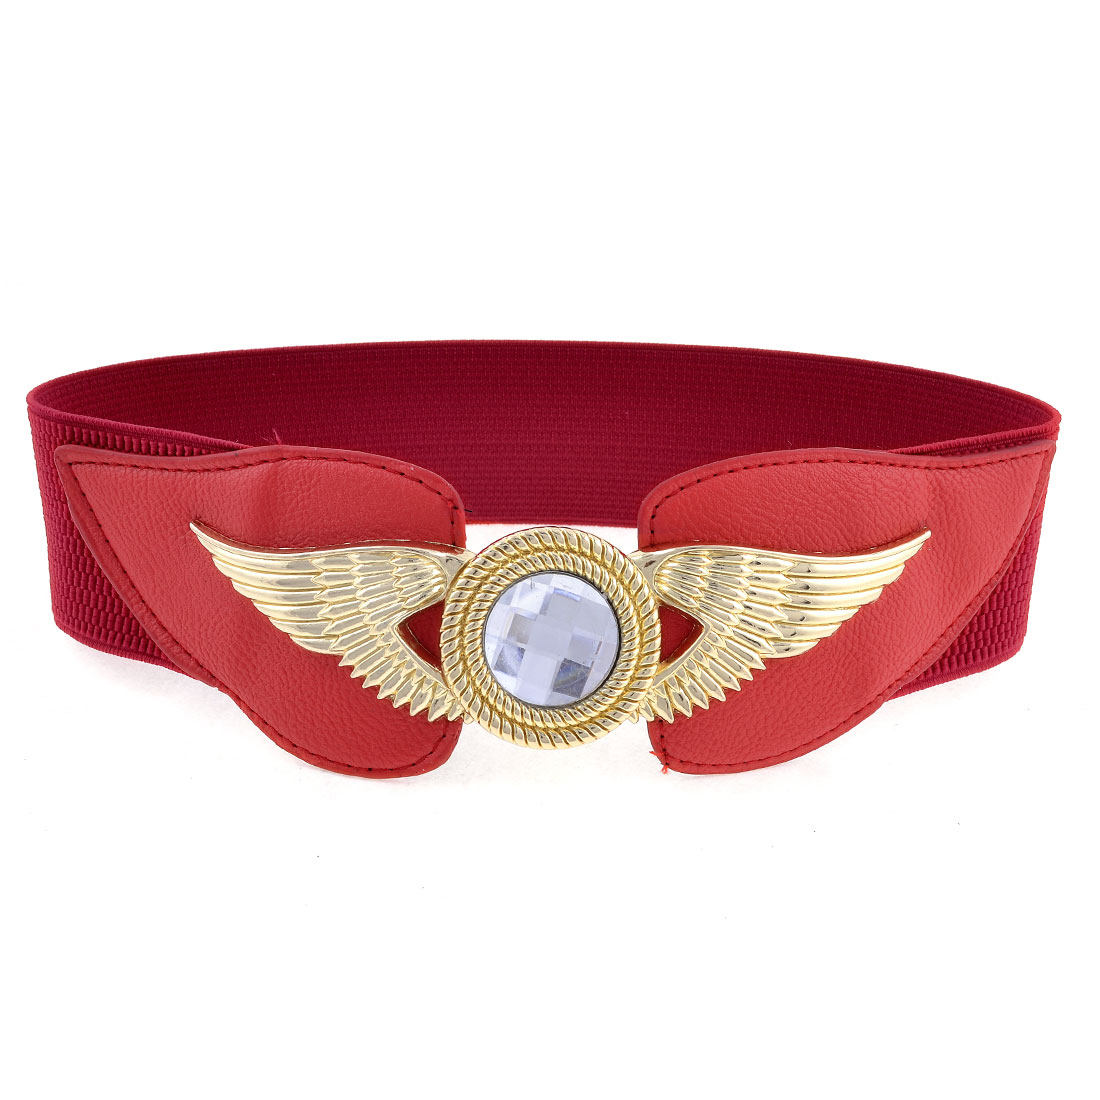 Ladies Glittery Plastic Crystal Eagle Design Buckle Spandex Waist Belt Dark Red